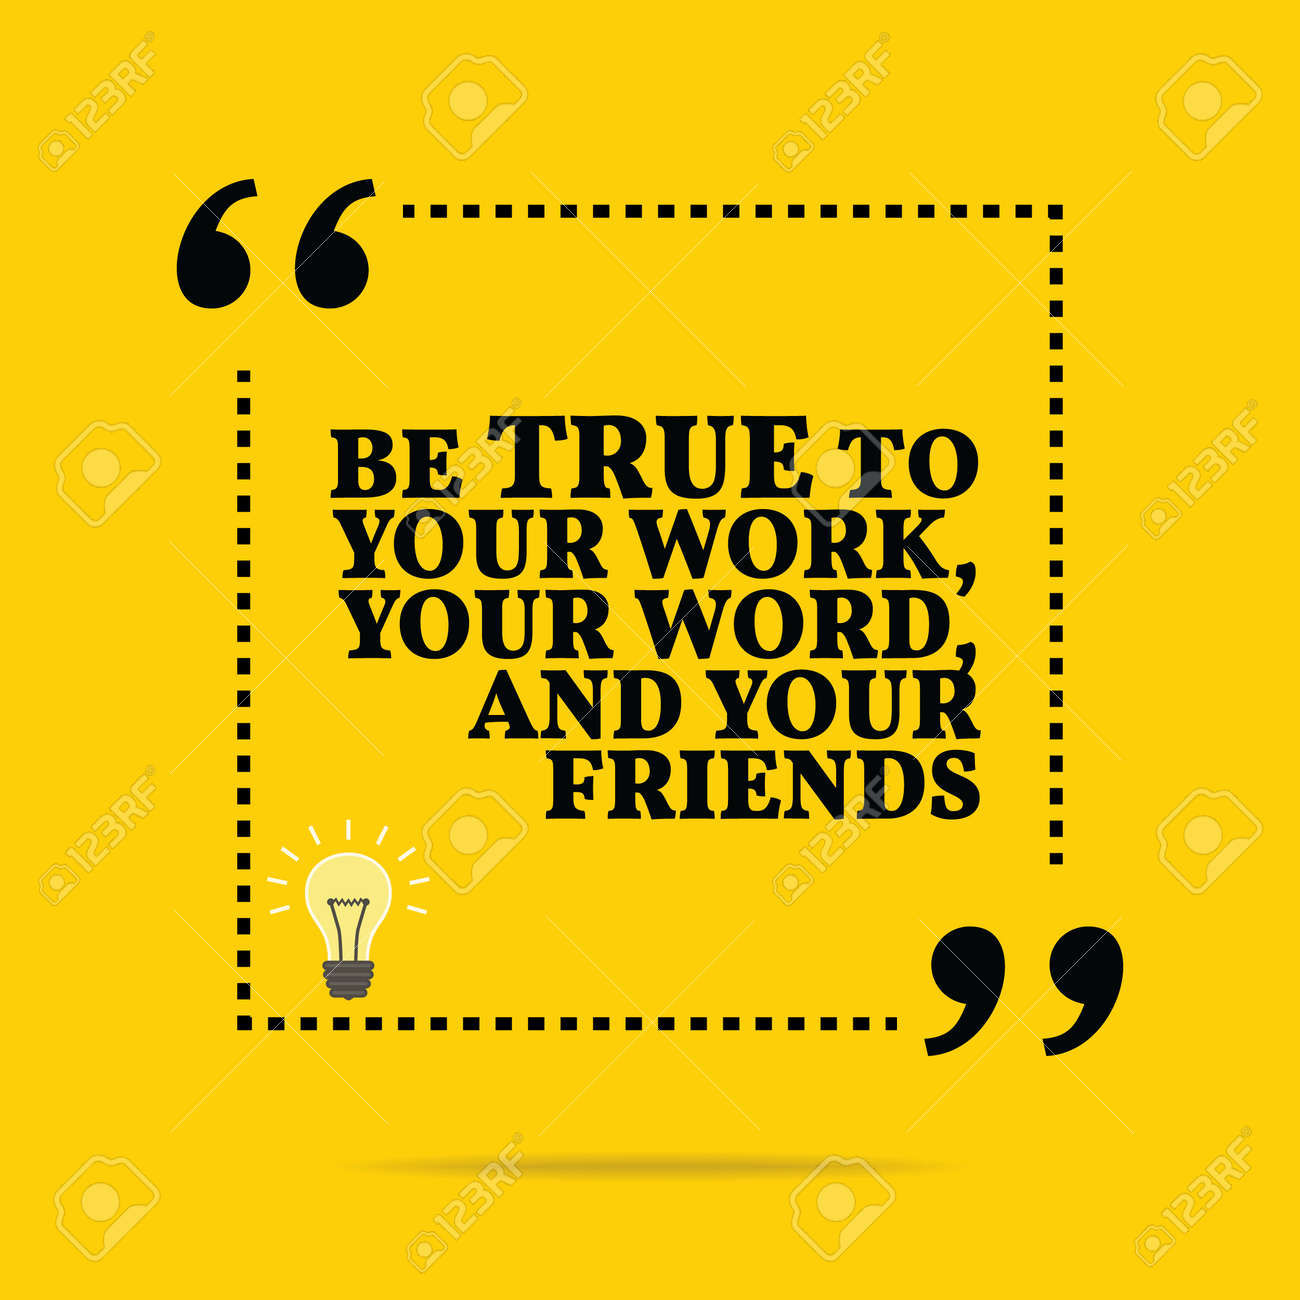 Motivational Quote For Work Inspirational Motivational Quotebe True To Your Work Your